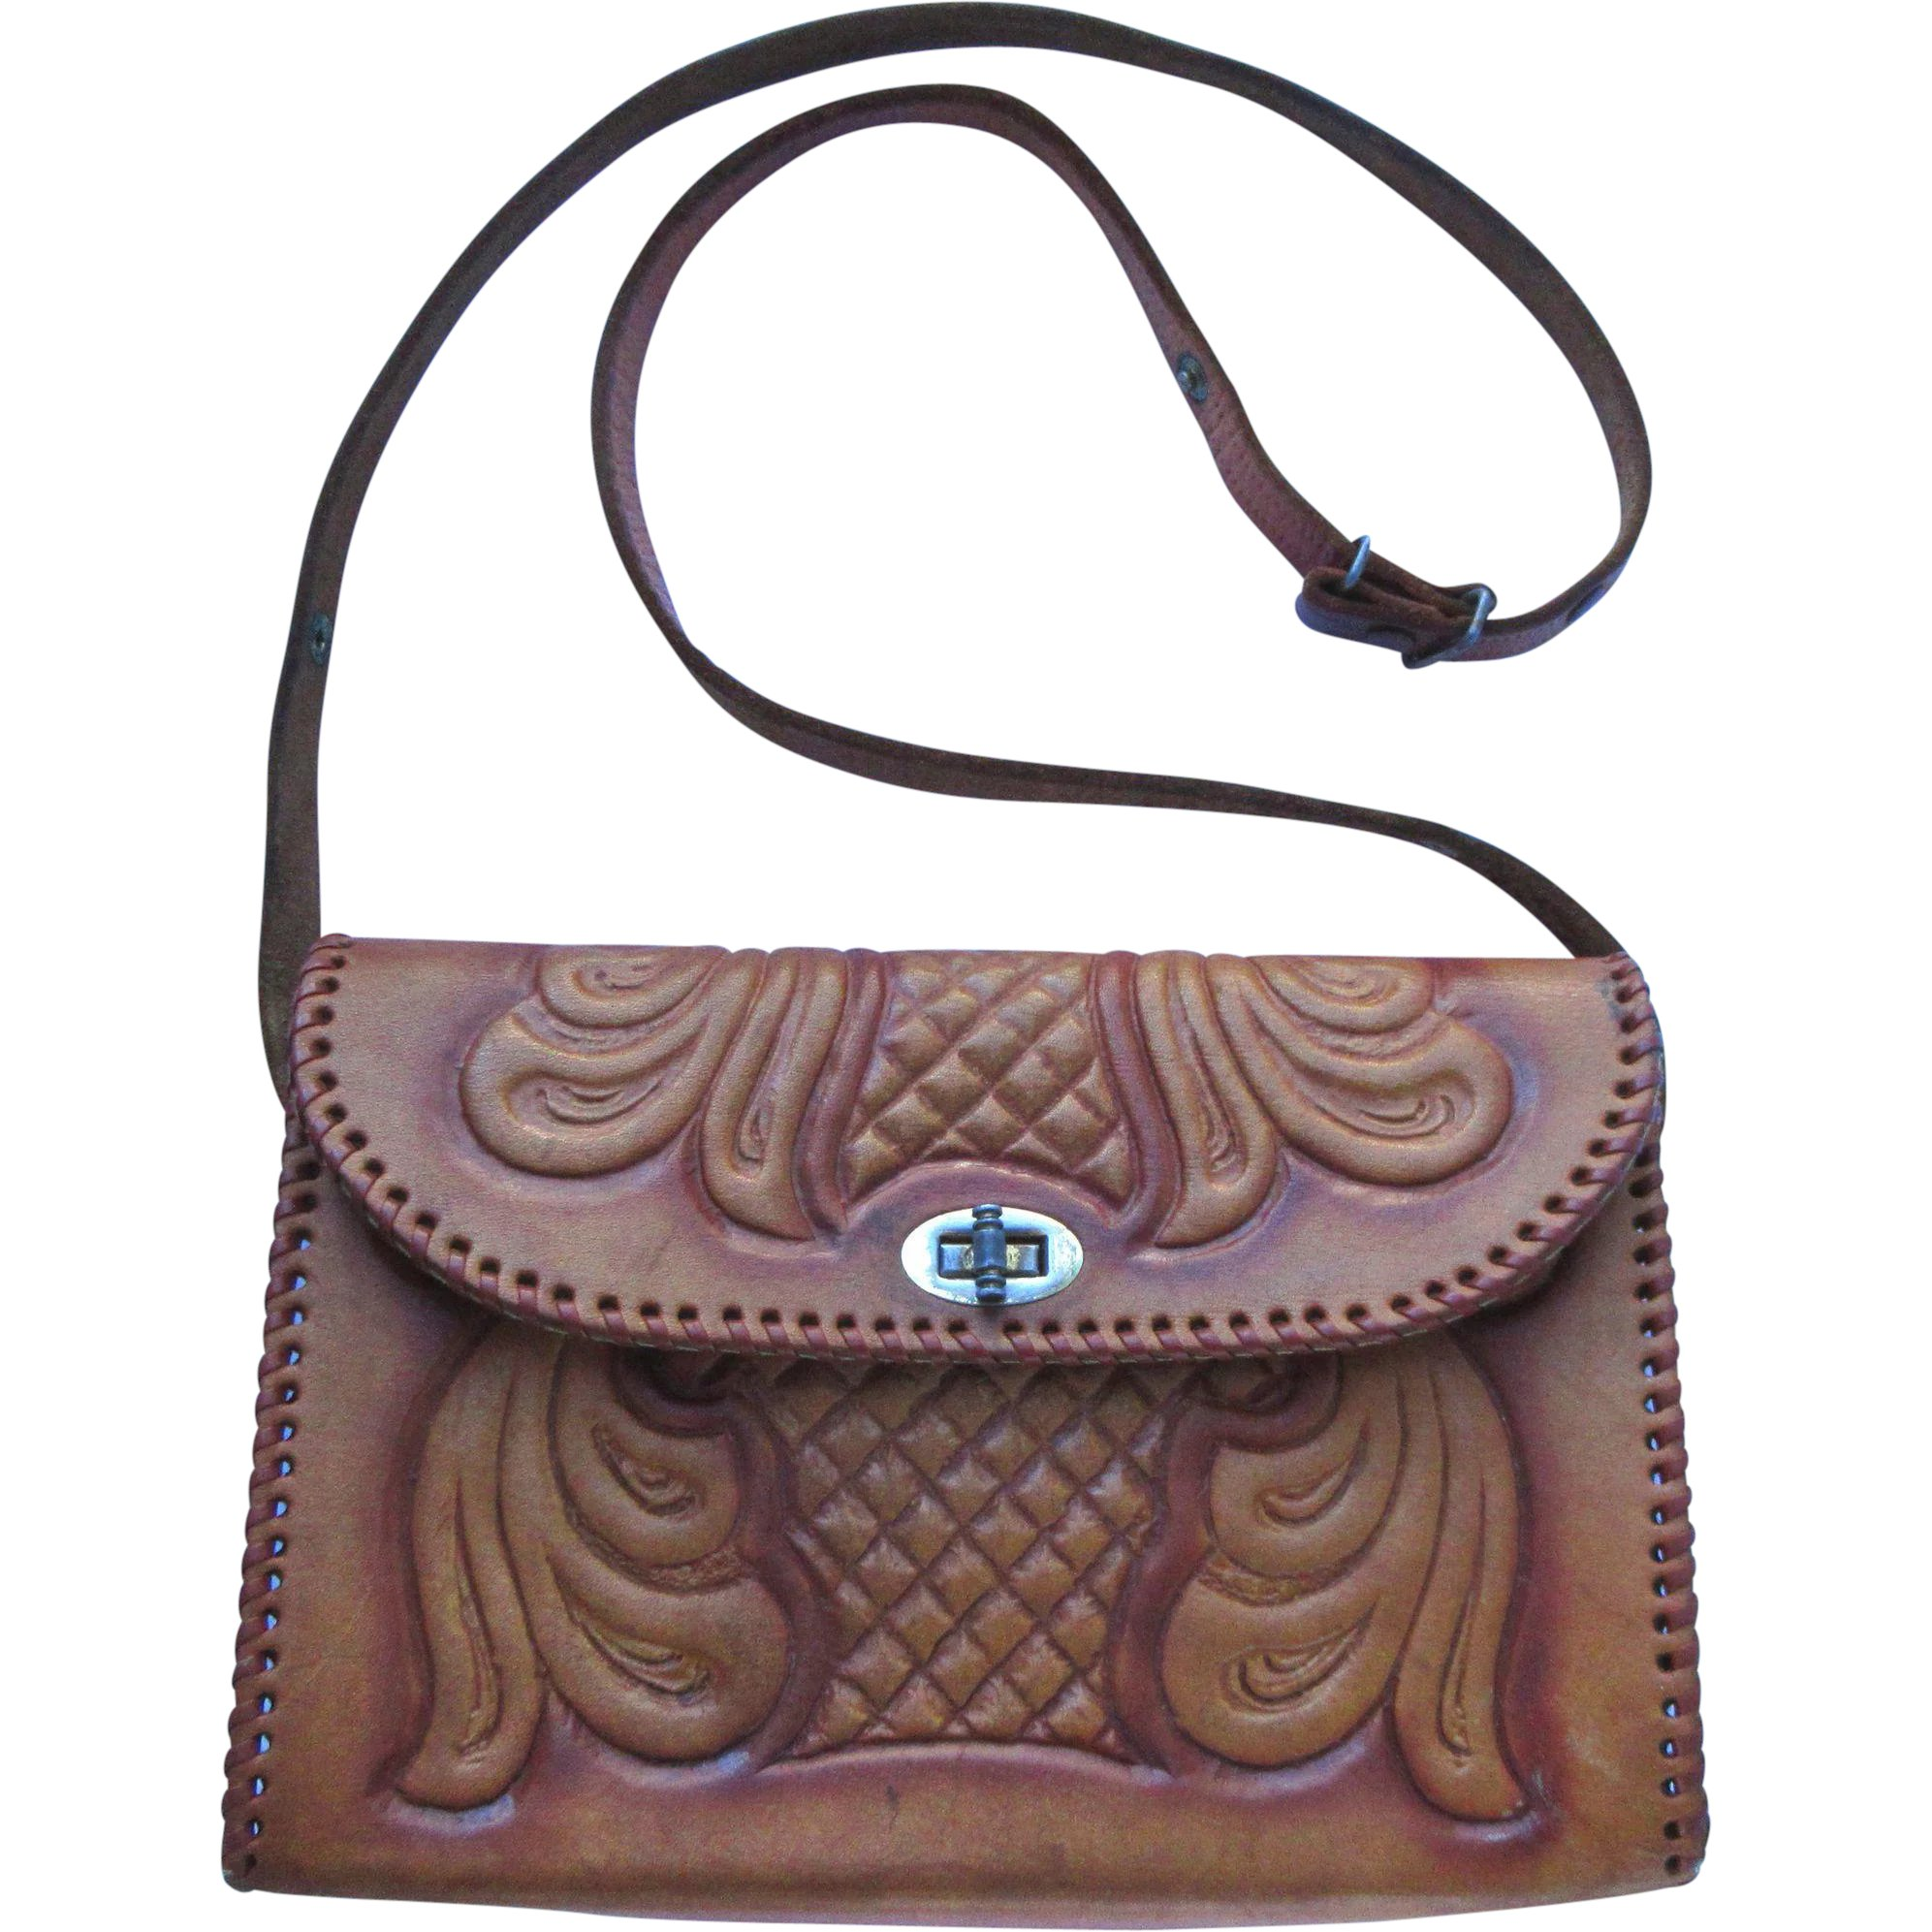 206fad2ef4 Vintage Hand-Tooled Leather Handbag in Caramel Color with Convertible    Whimsy